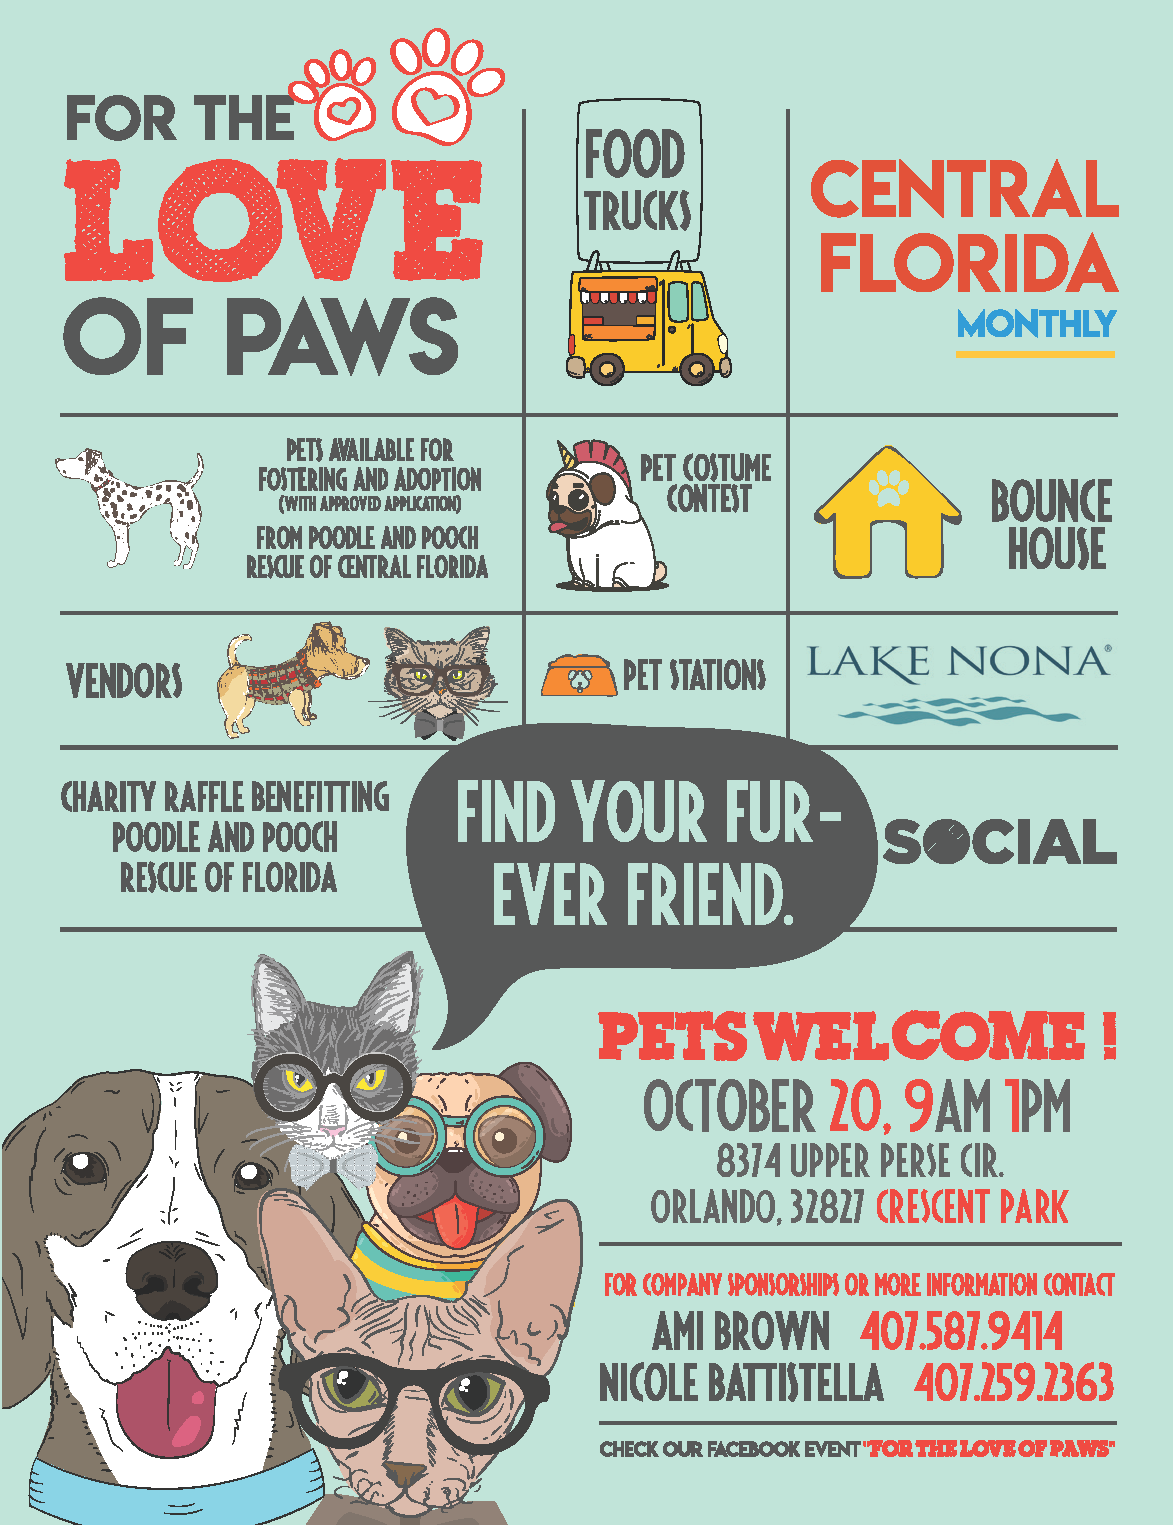 CFM's The Social: For the Love of Paws